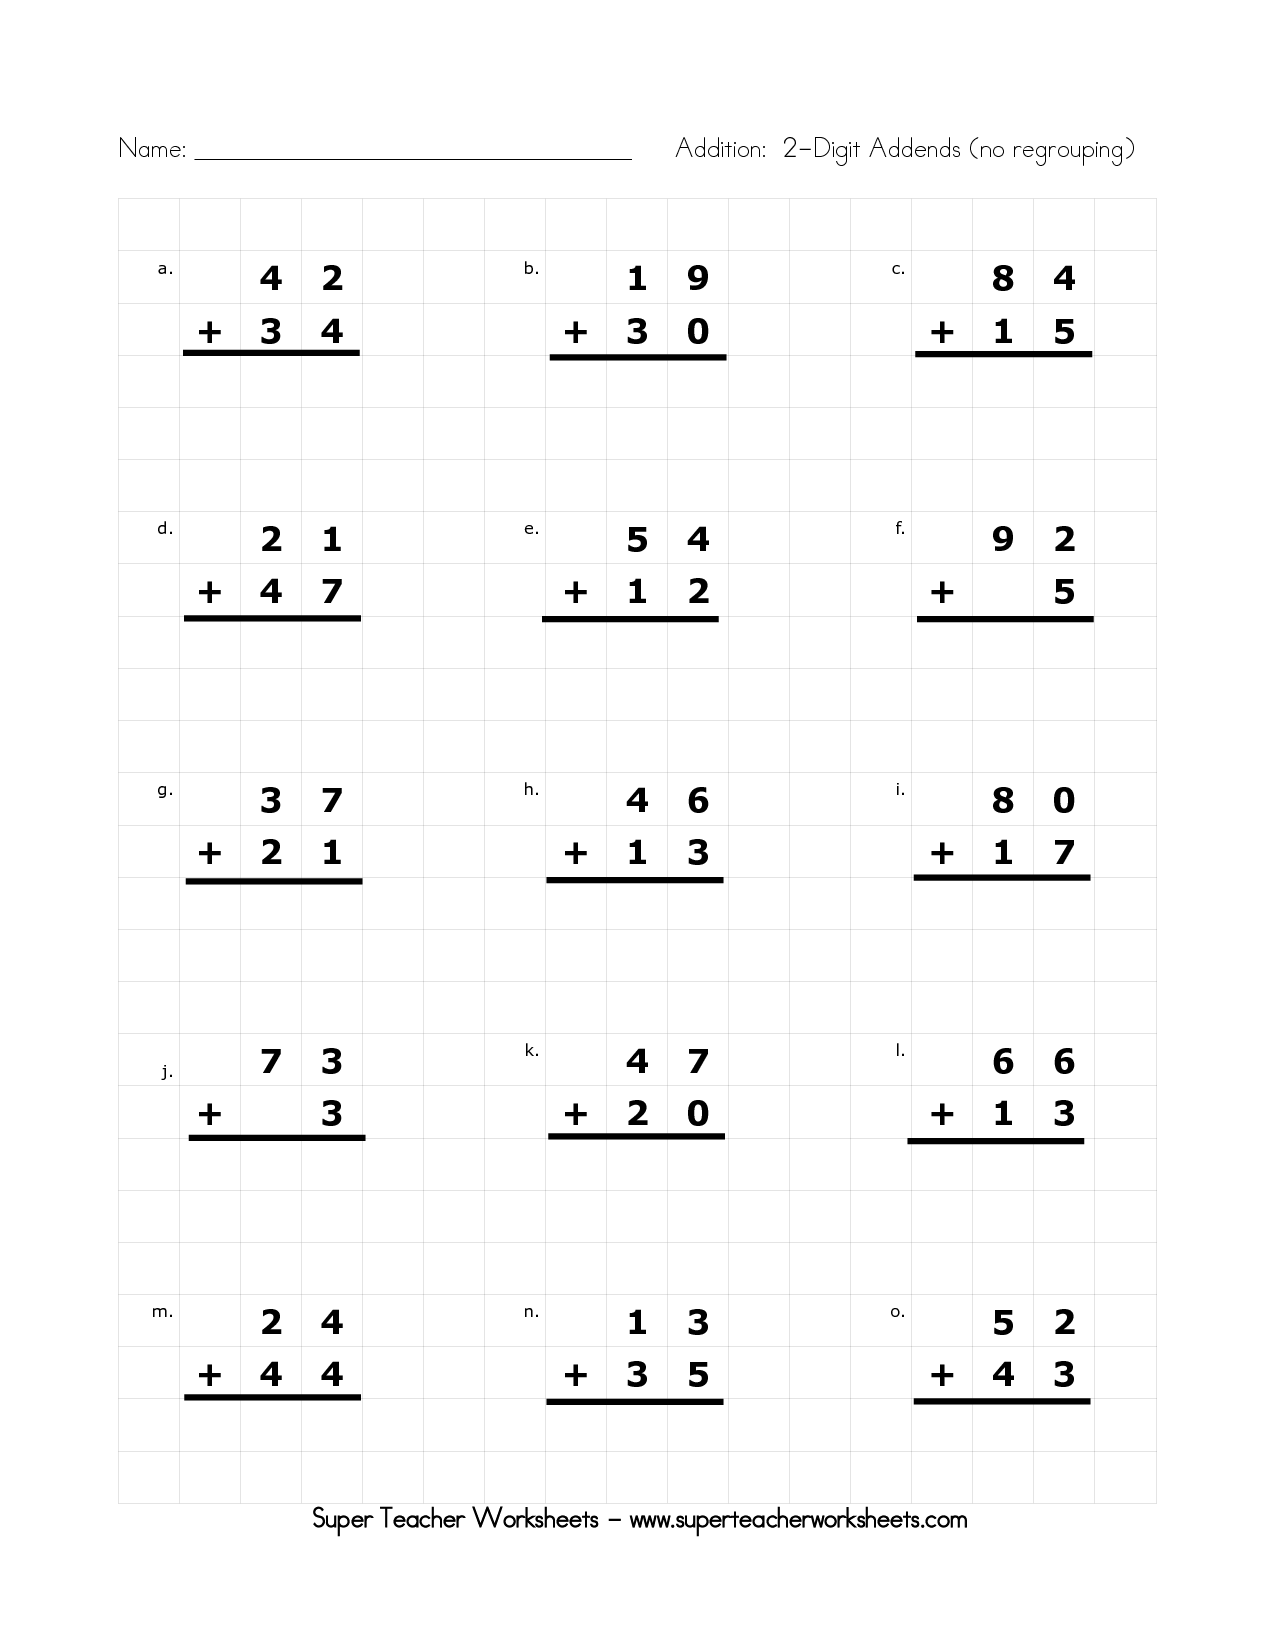 small resolution of https://dubaikhalifas.com/2-digit-addition-without-regrouping-worksheets-mykinglist-2nd-grade-math-worksheets/